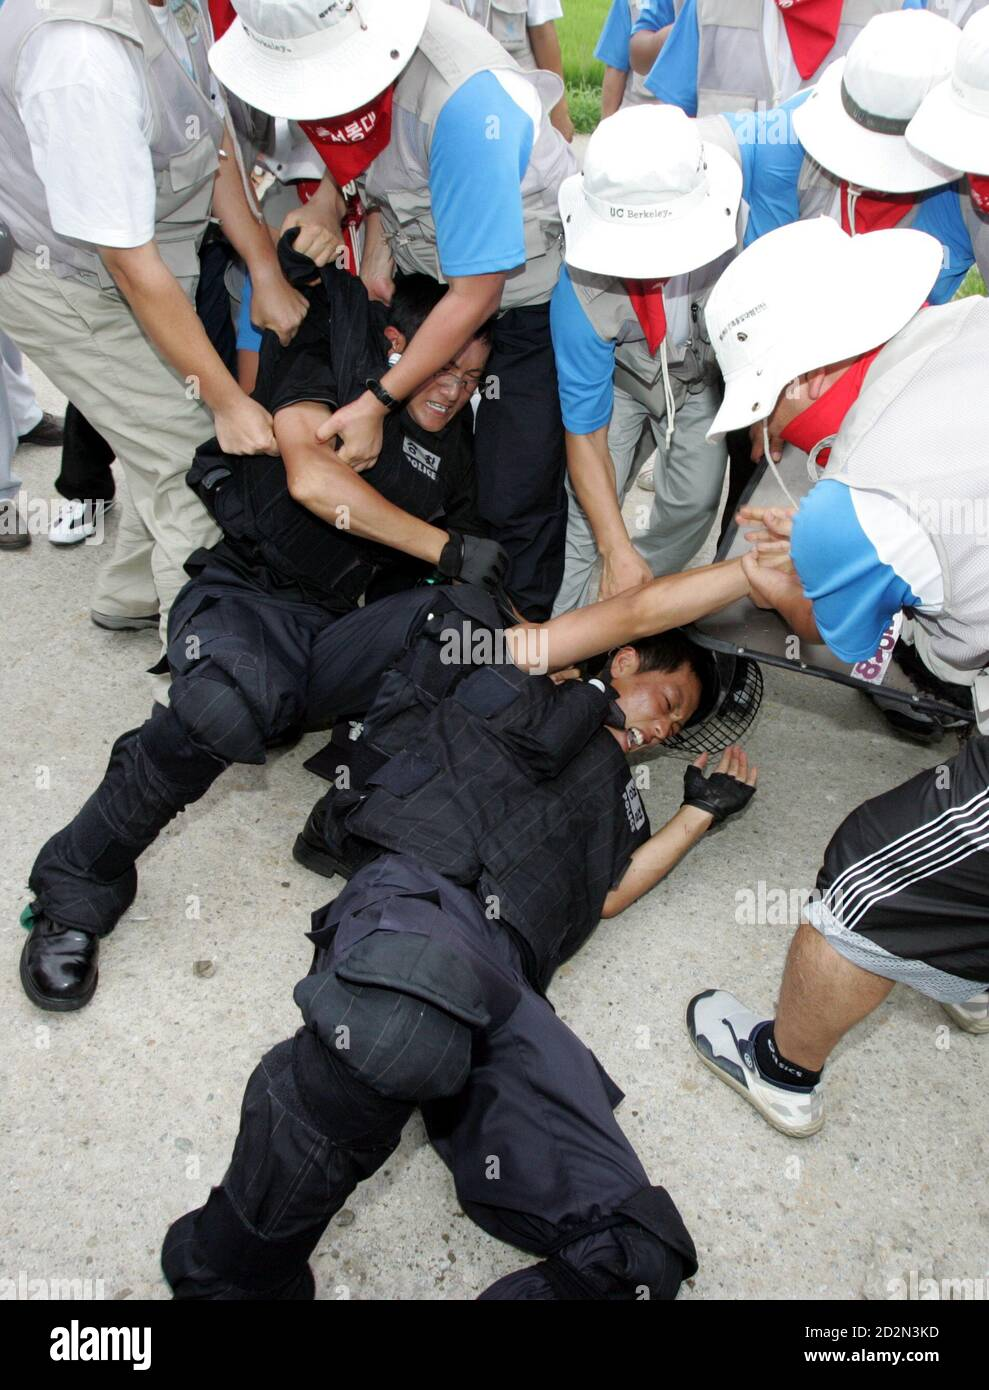 Protesters detain two riot policemen as police use shields and clubs to stop protesters trying to enter U.S. army's Camp Humphreys in Pyongtaek, South Korea.  Protesters detain two riot policemen as police use shields and clubs to stop the protesters trying to enter the U.S. army's Camp Humphreys in Pyongtaek, about 80 km (50 miles) south of Seoul, August 8, 2005. About 500 South Korean protesters from labour unions and college students' groups rallied near the U.S. army base on Monday as they demanded U.S. forces leave the country, which they insist block the reunification of the two Koreas.  Stock Photo